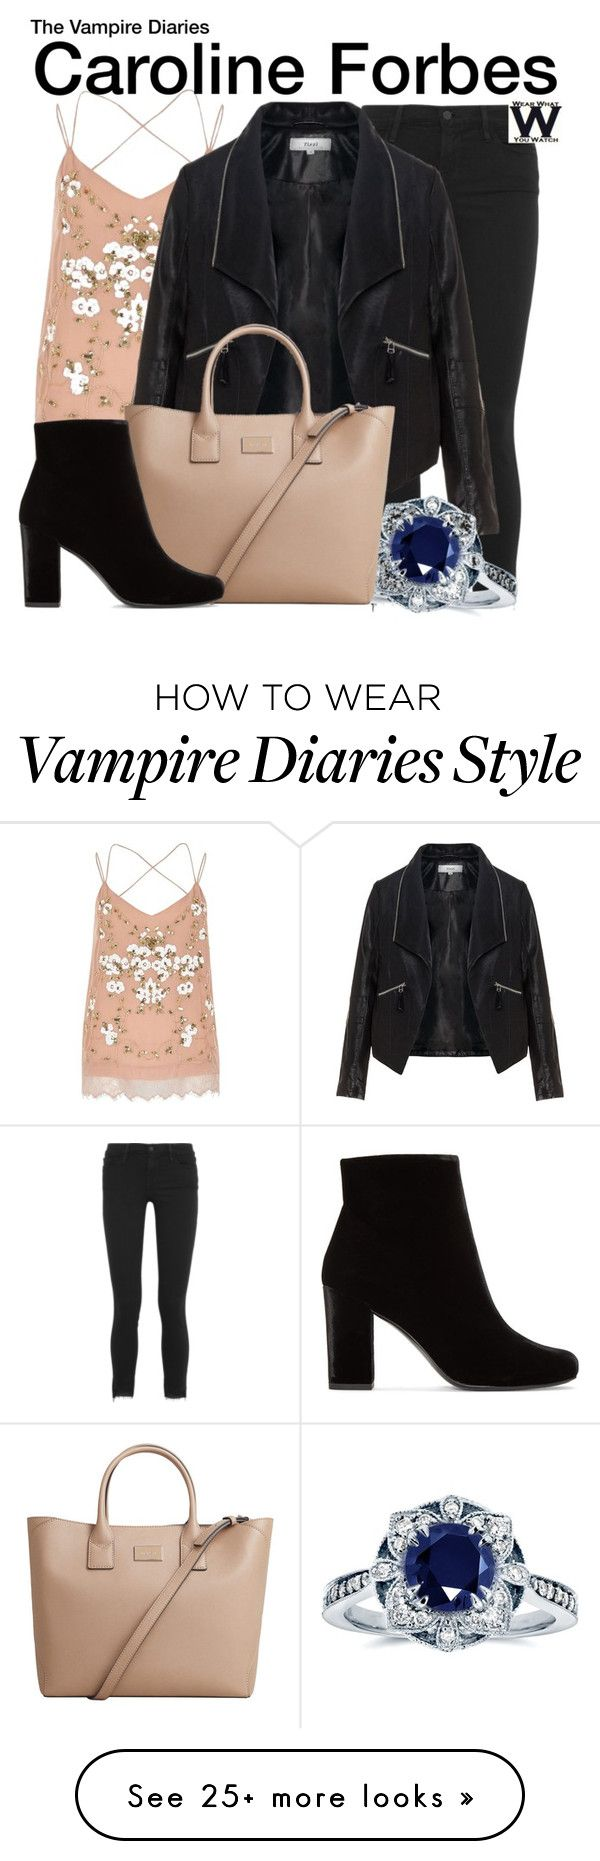 """""""The Vampire Diaries"""" by wearwhatyouwatch on Polyvore featuring River Island, Frame, Zizzi, Kobelli, MANGO, Yves Saint Laurent, television and wearwhatyouwatch"""